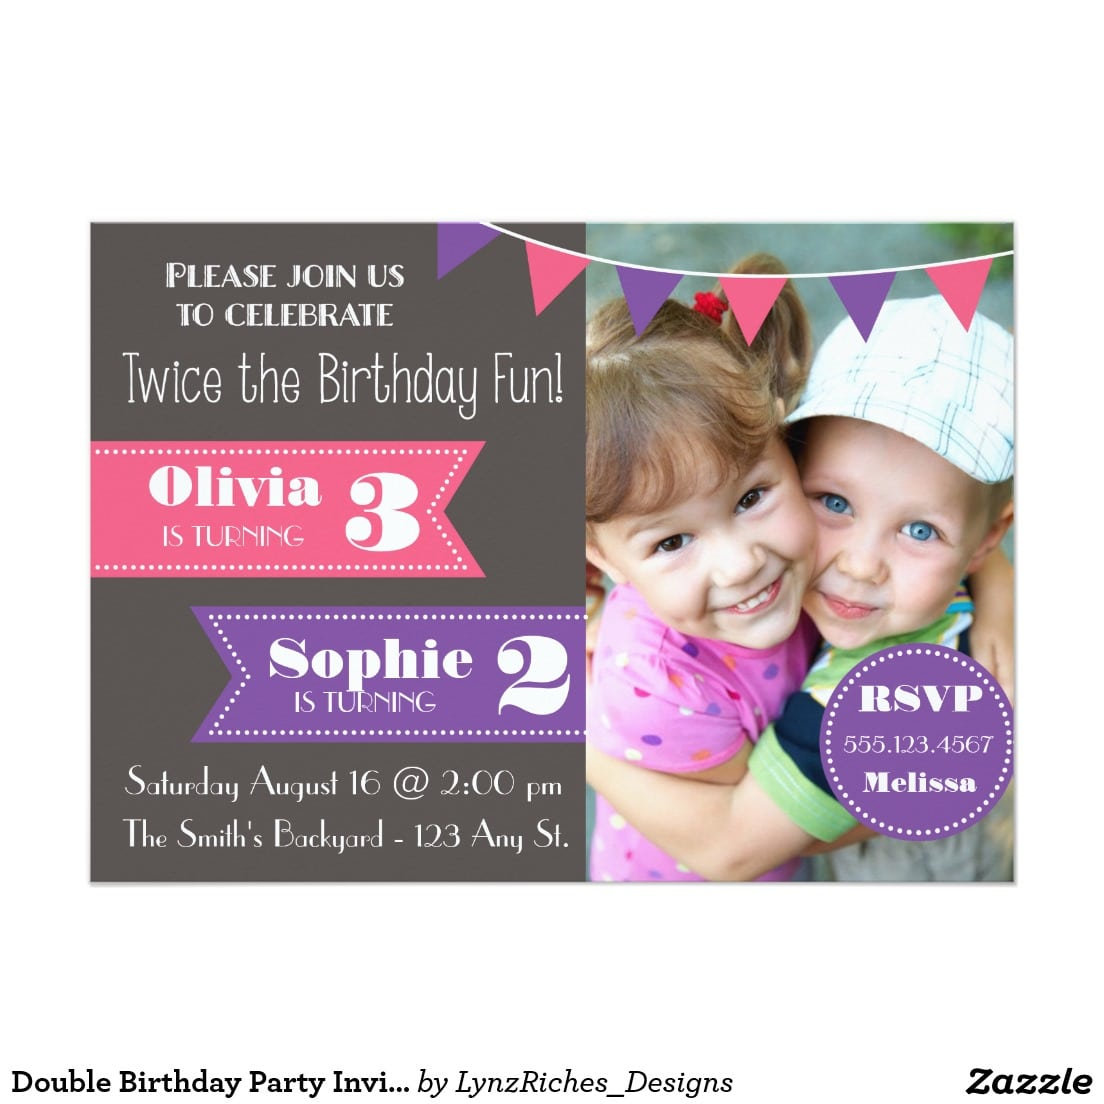 1000+ Images About Invitations On Pinterest